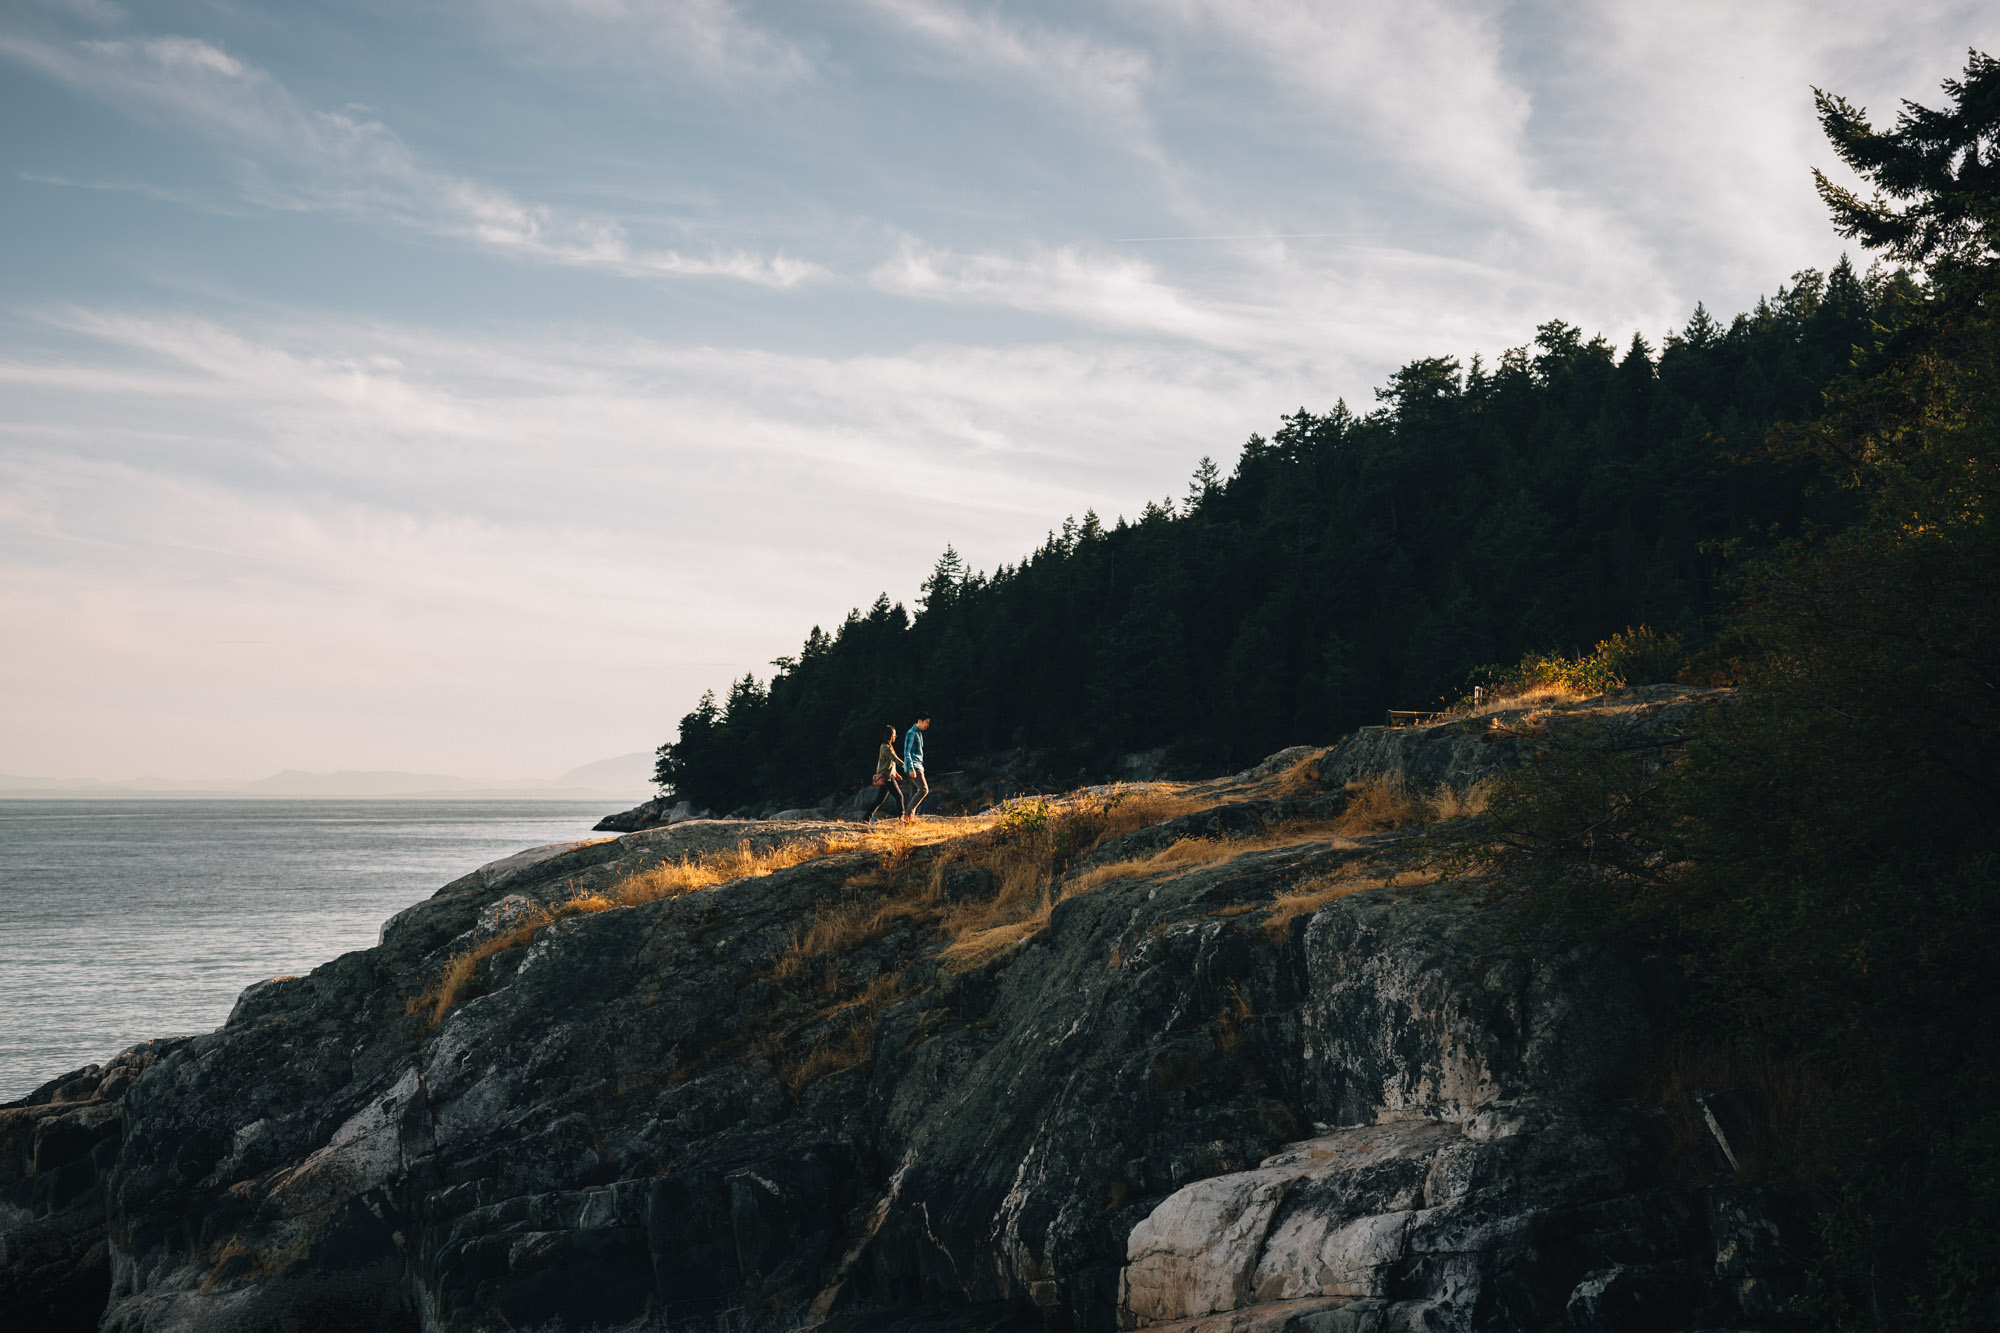 caulfield park engagement photography in west vancouver with mytyl and vincent chow